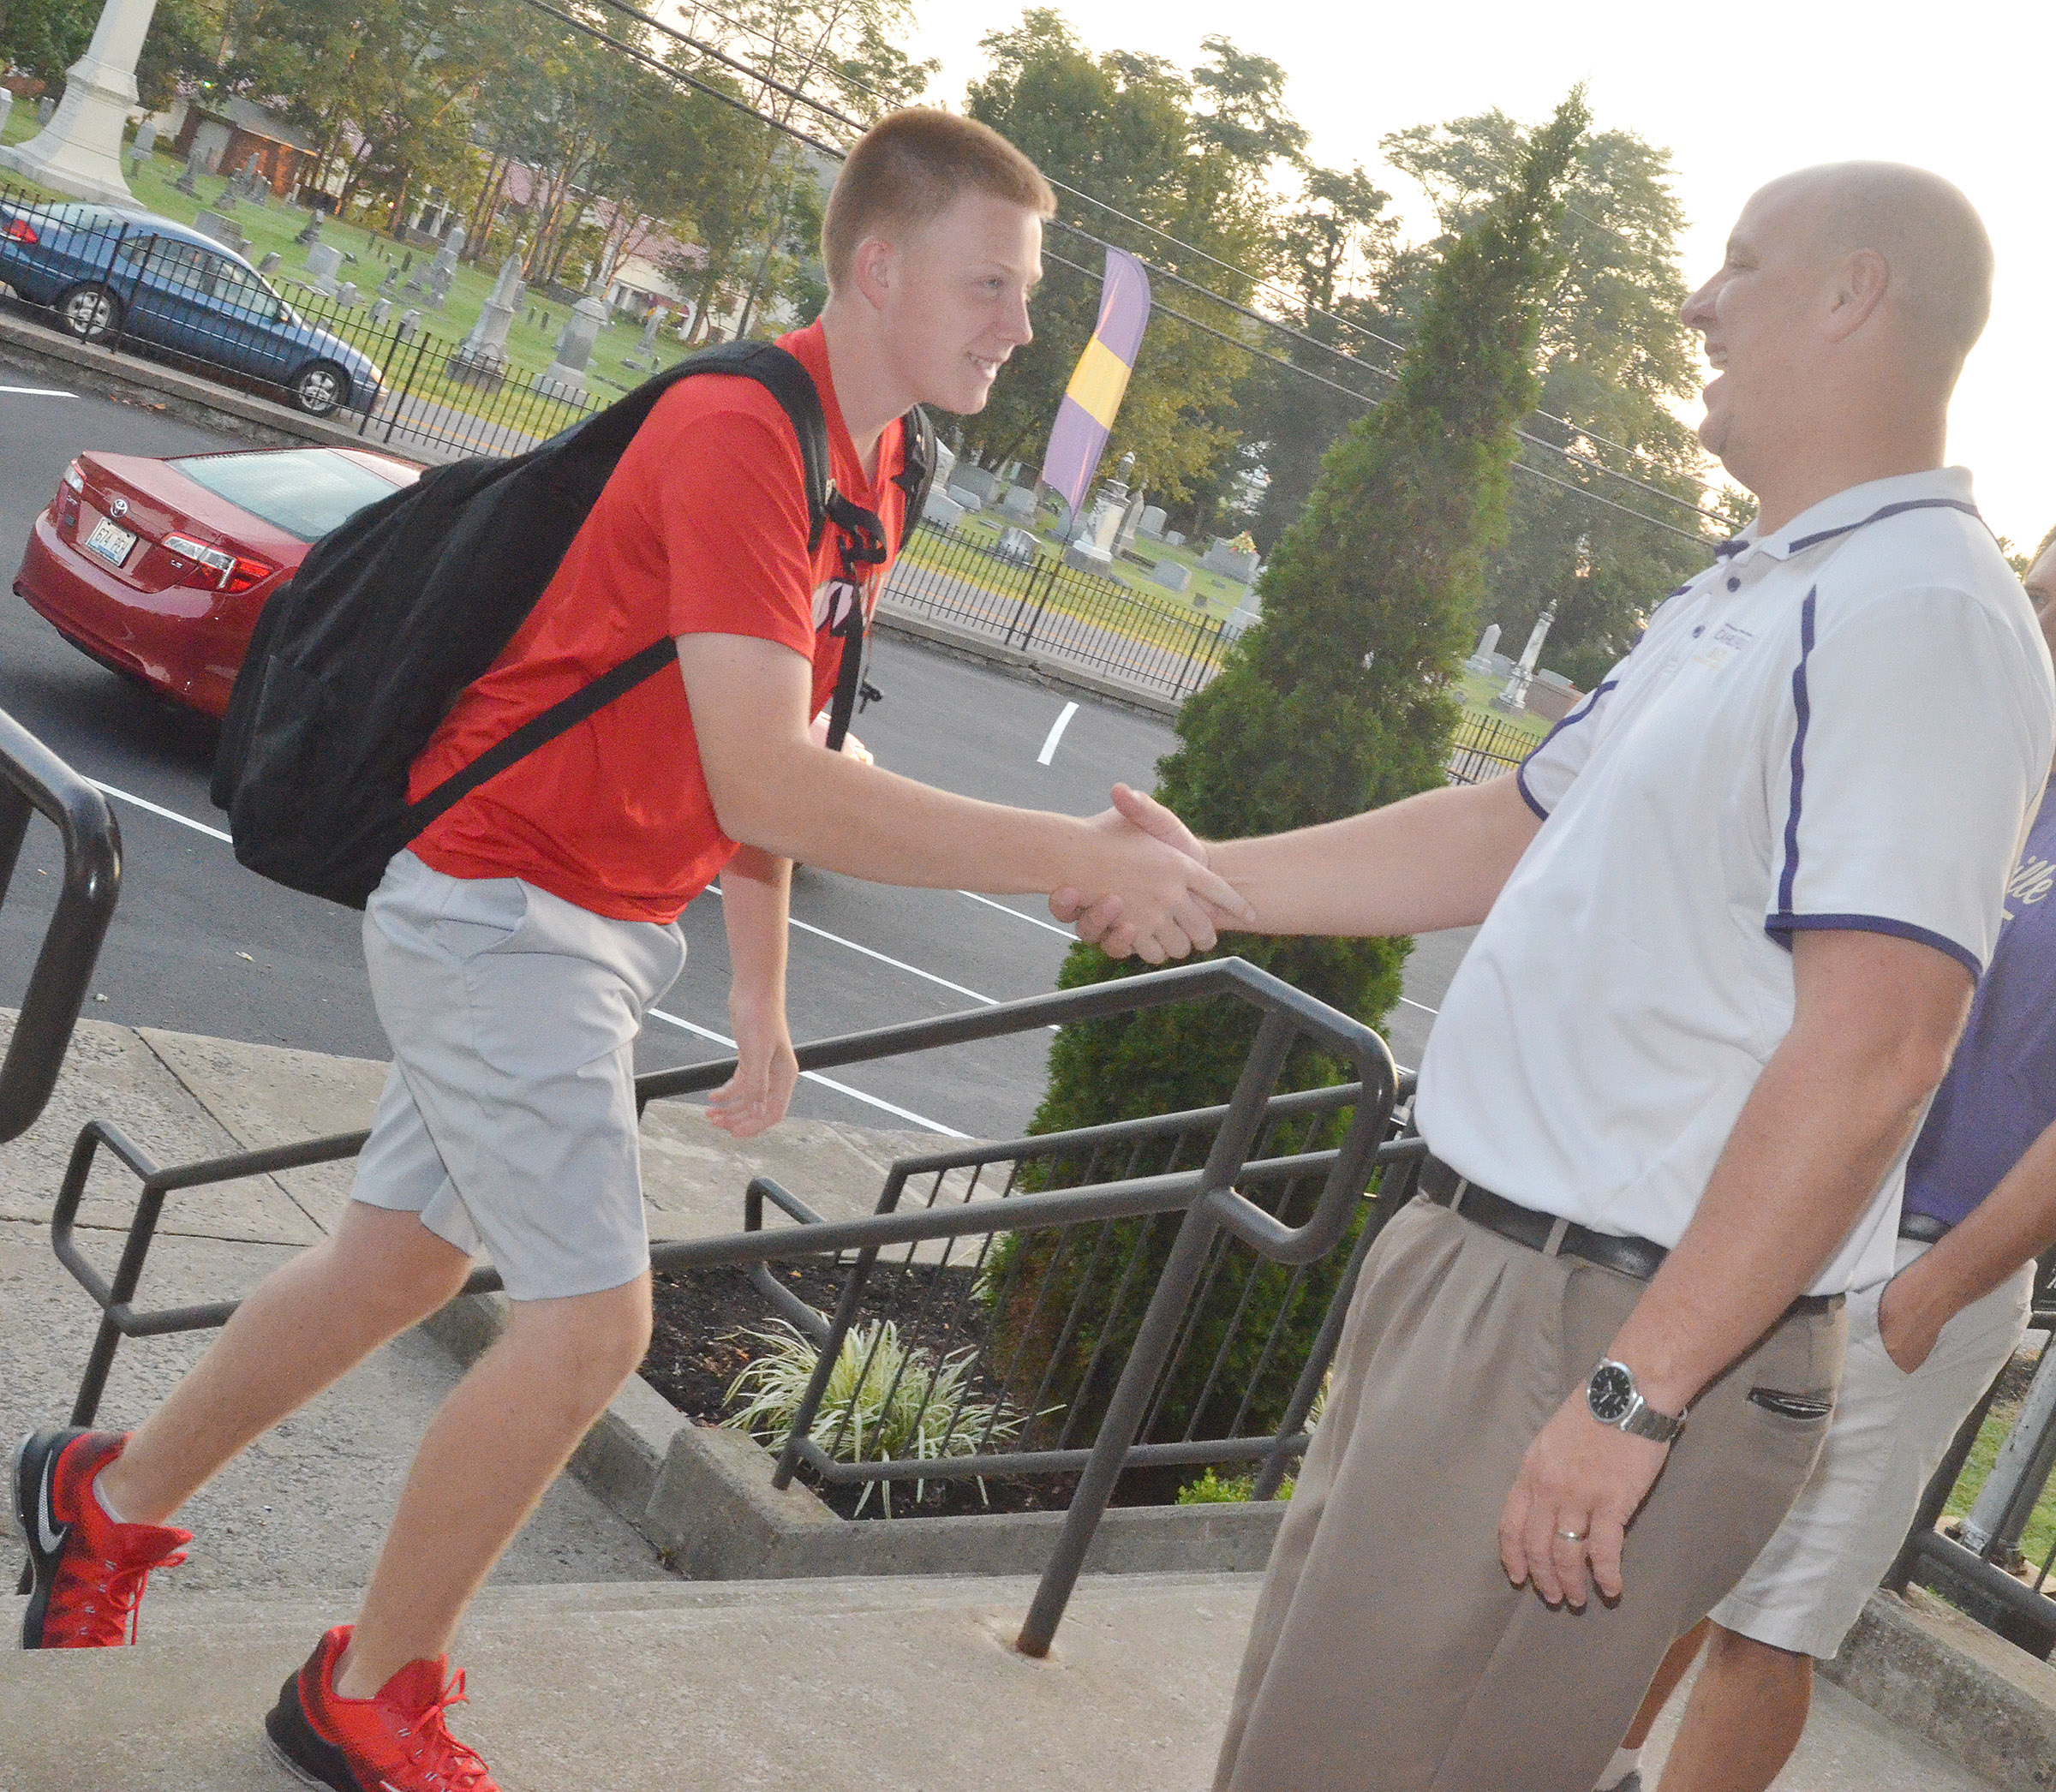 CHS Principal David Petett greets Patrick Walker on his third day of his sophomore year.